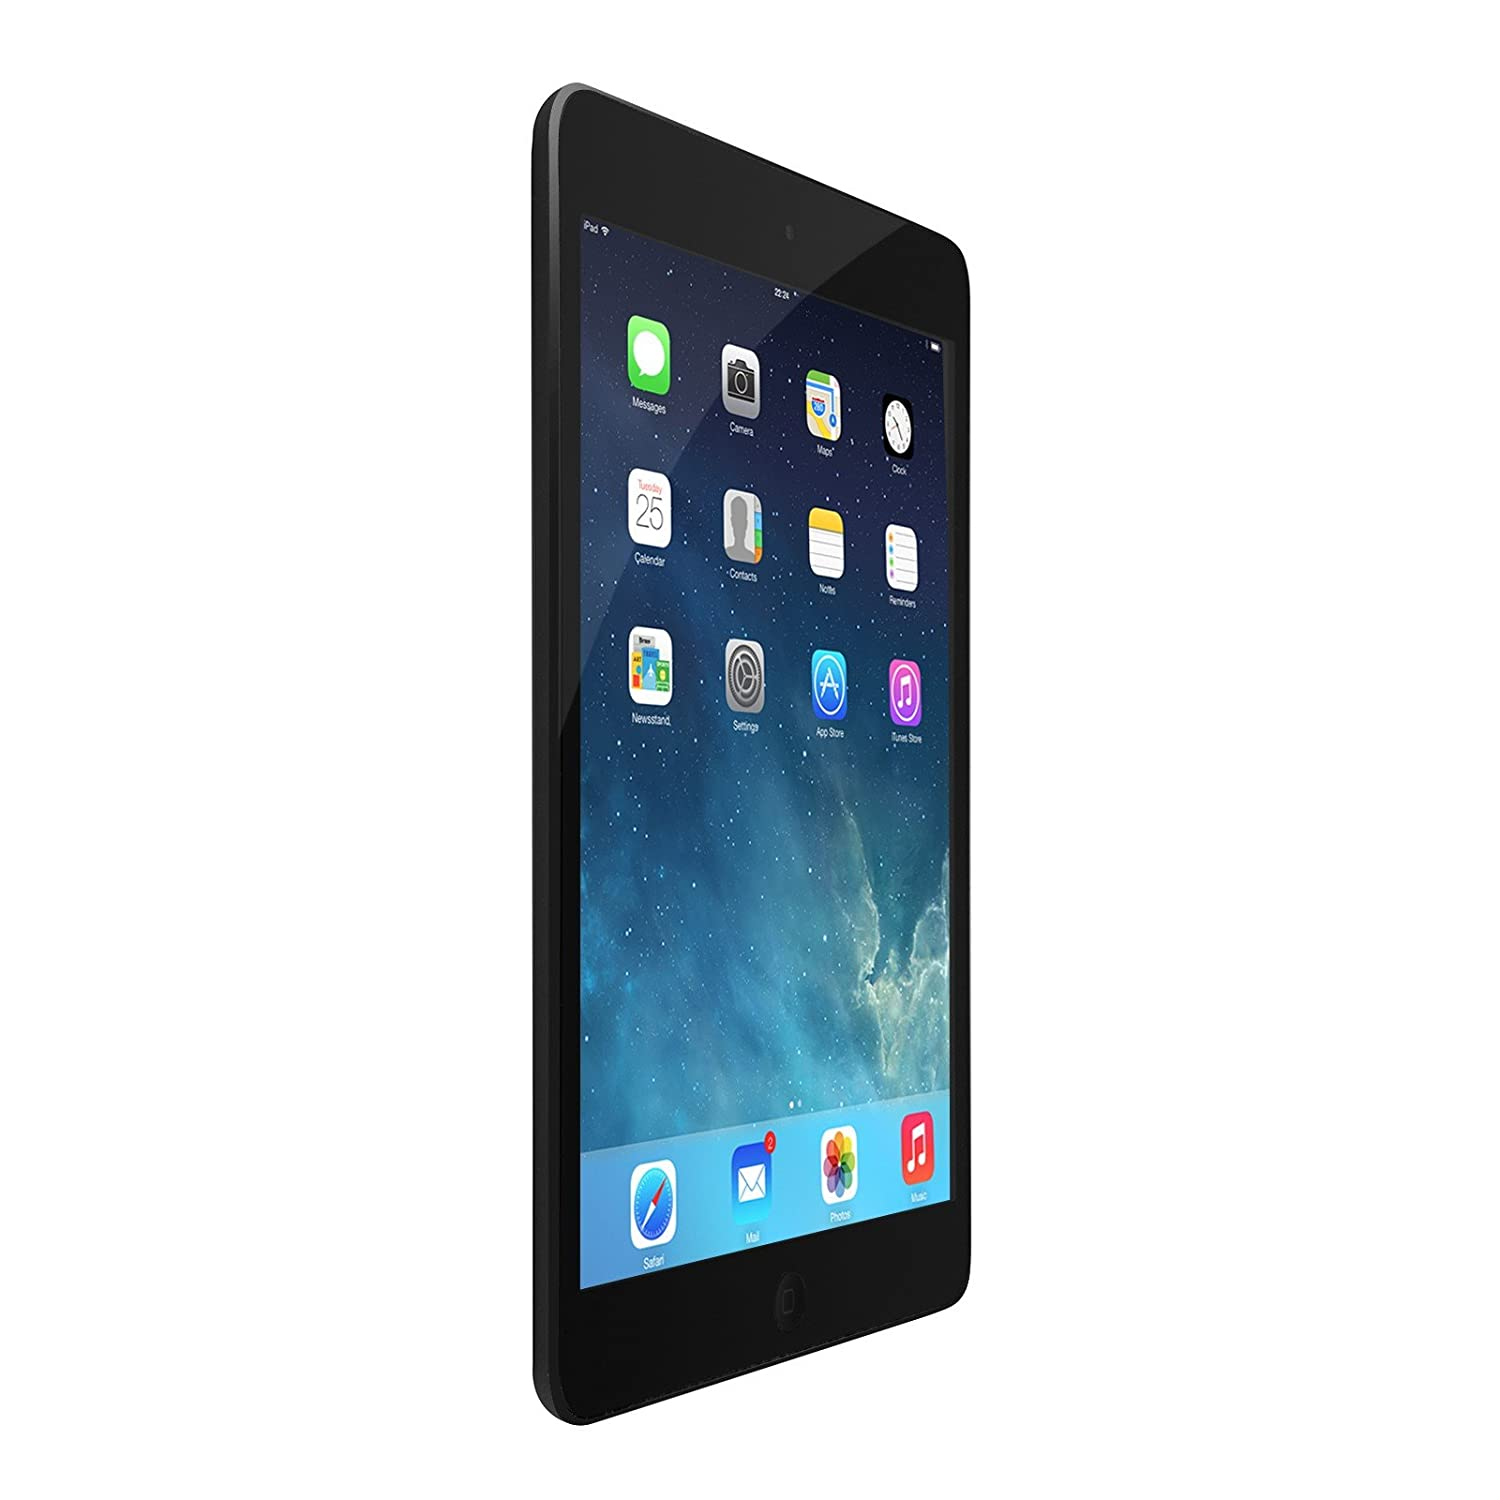 Apple Ipad Mini Fd528ll A Md528ll 16gb Wi Fi Lithium Ion 8211 Polymer Usb Battery Charger By Max1811 Black Refurbished Computers Accessories